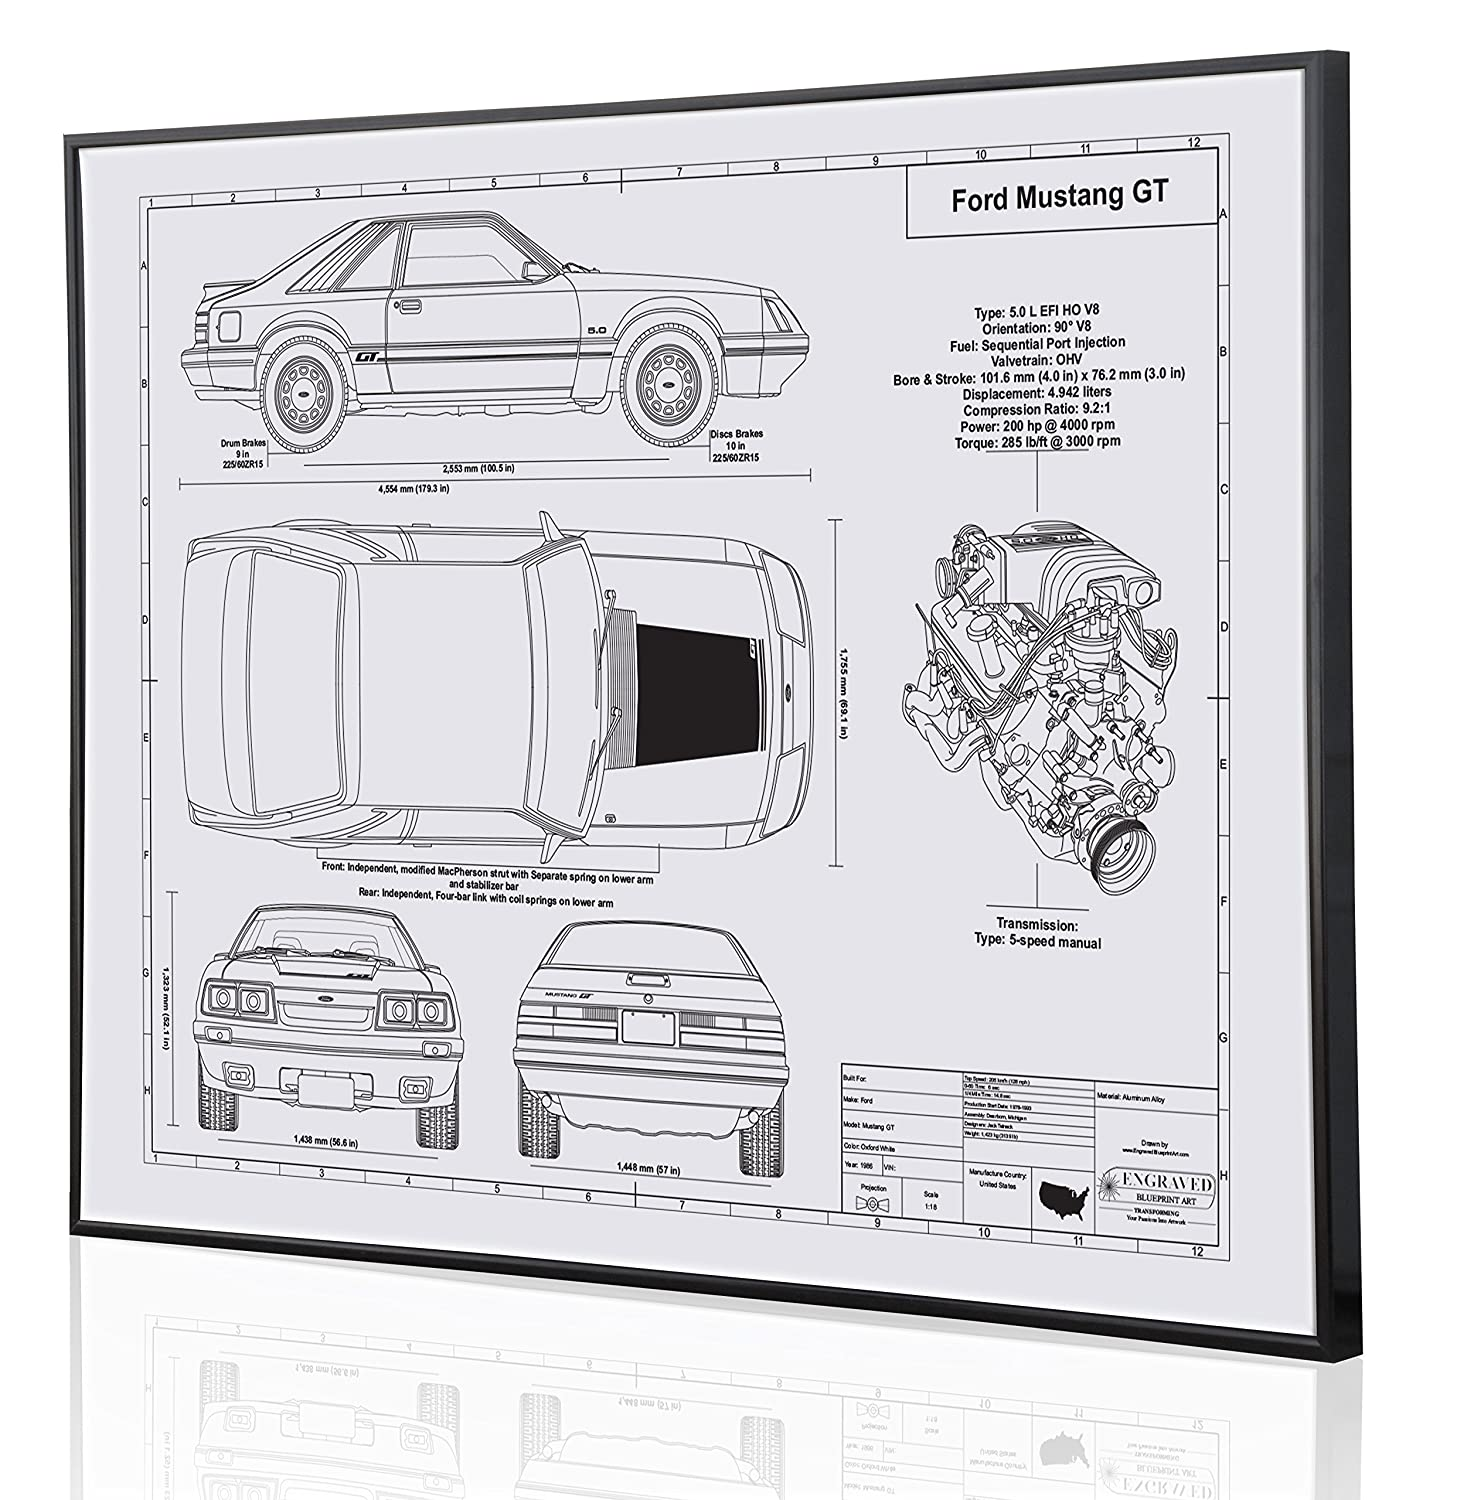 Amazon com ford mustang gt foxbody blueprint artwork laser marked personalized the perfect ford gifts handmade